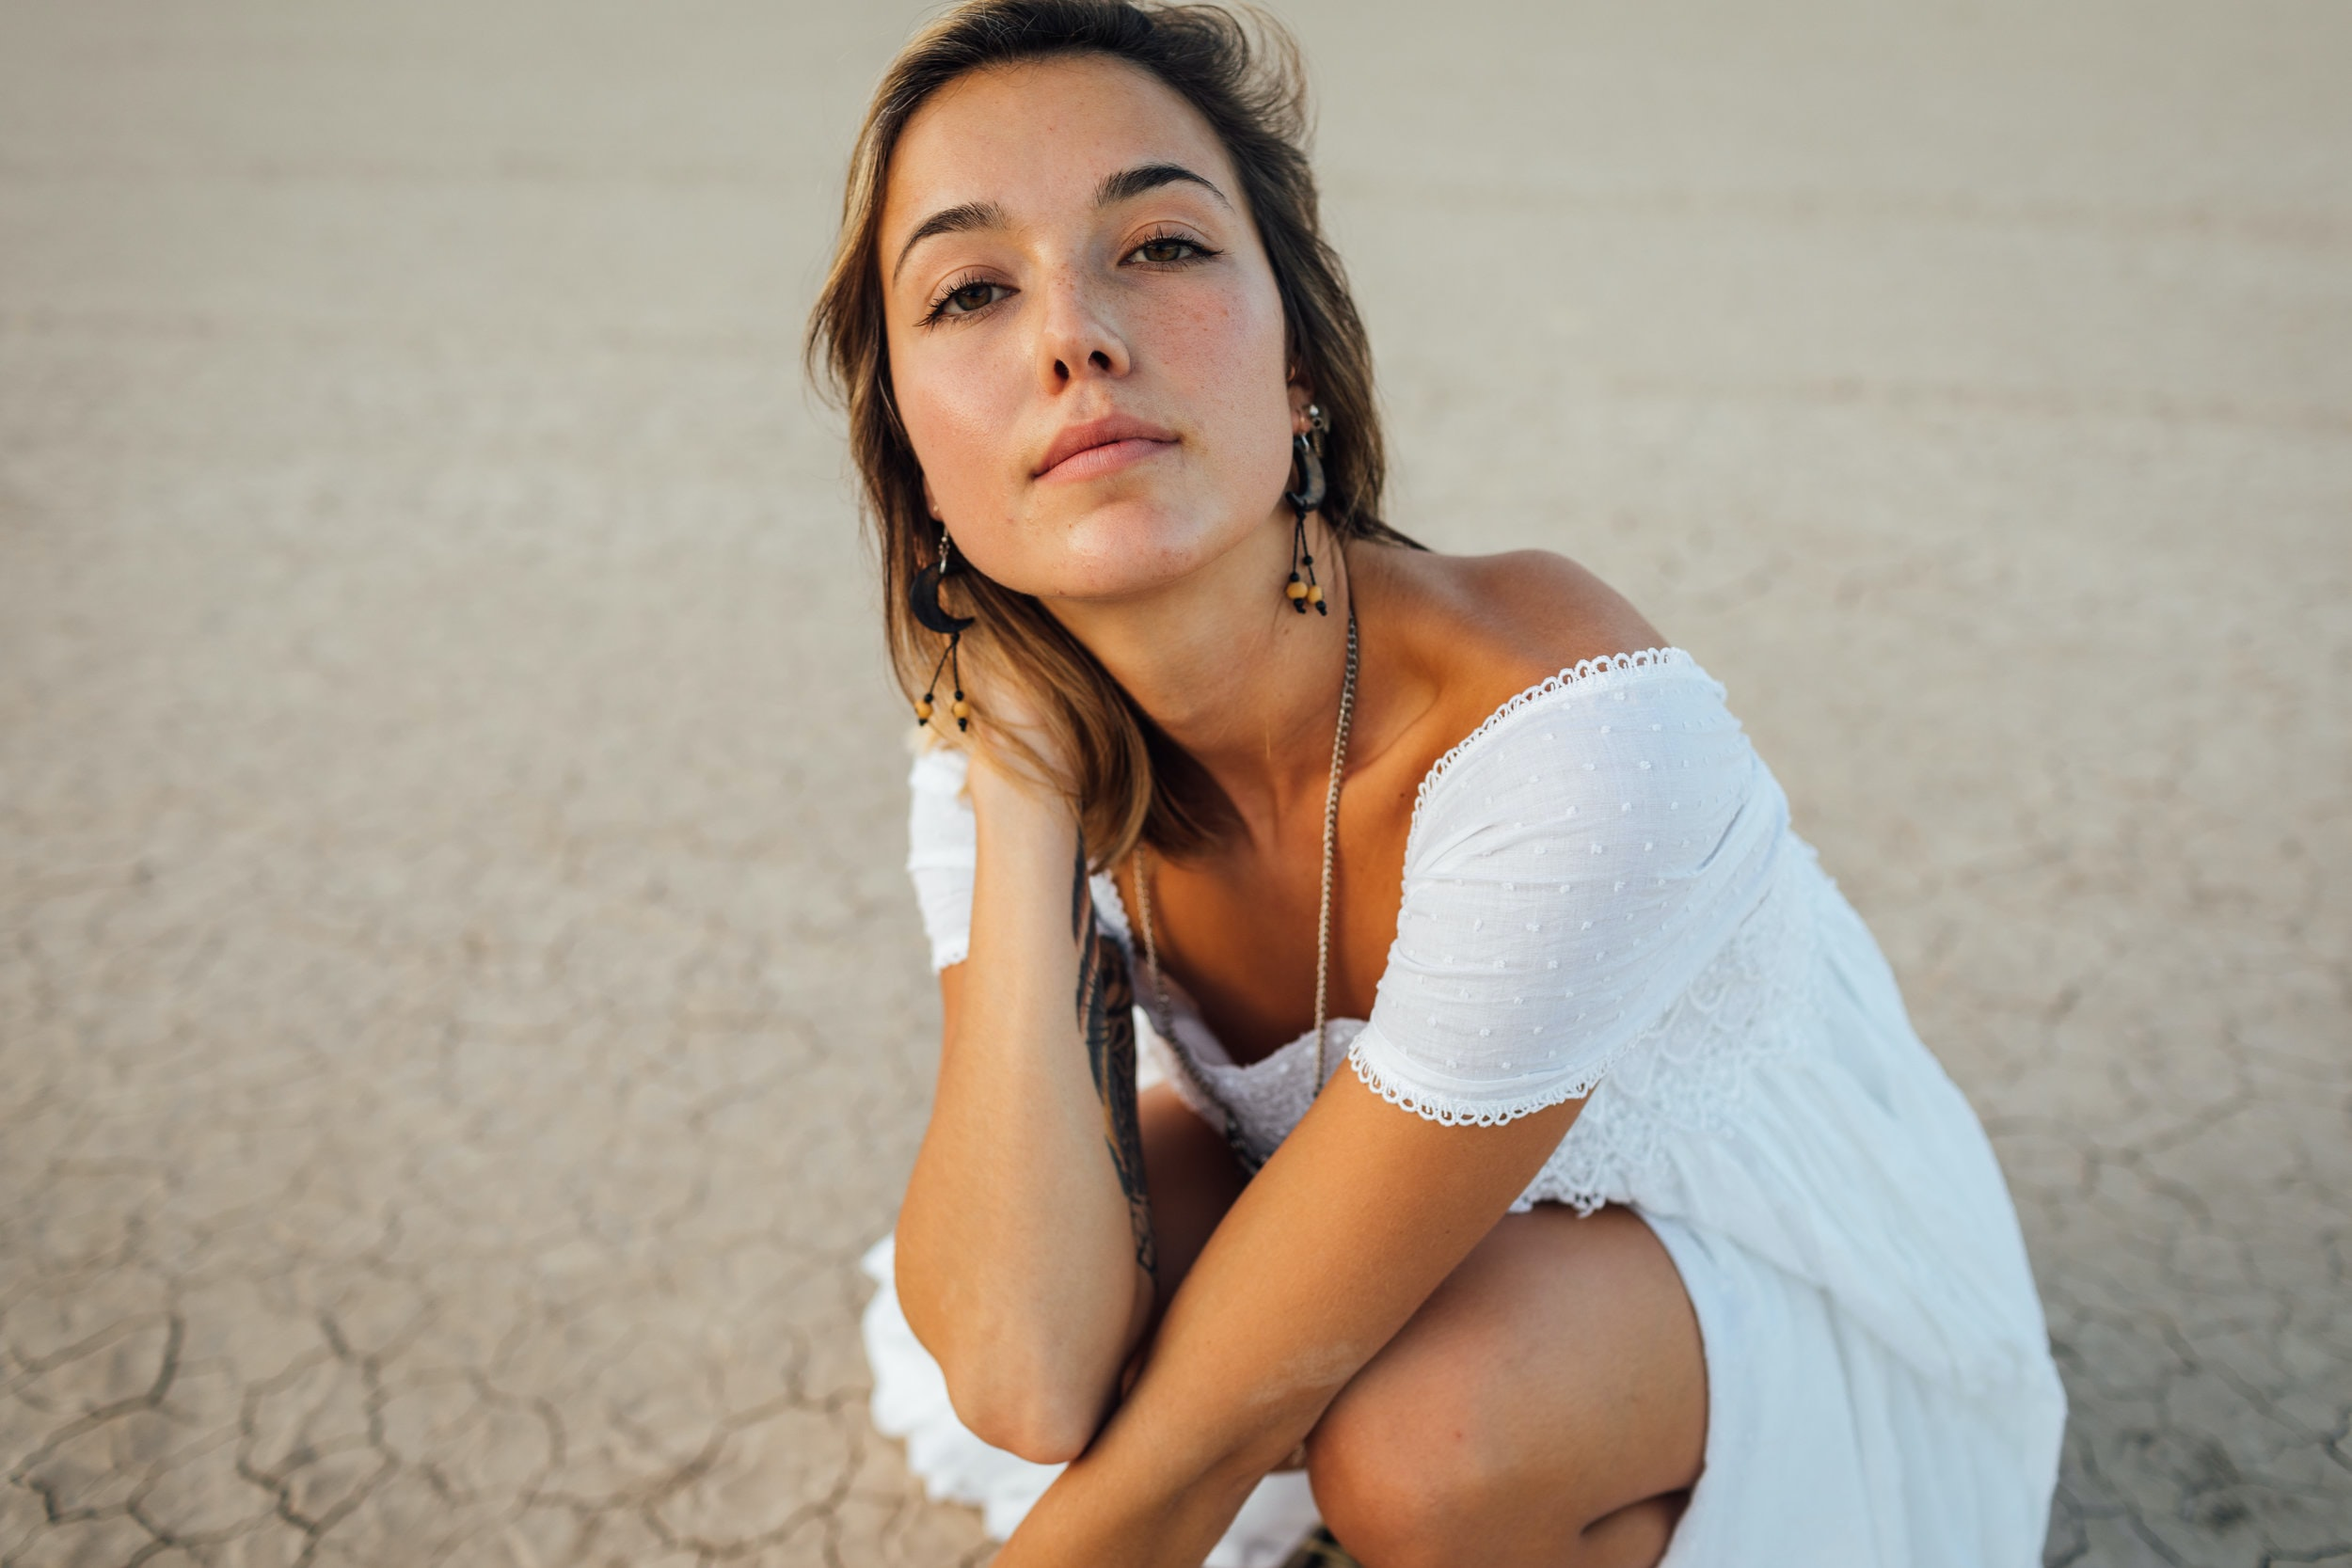 woman wearing white off-shoulder dress sitting on sand